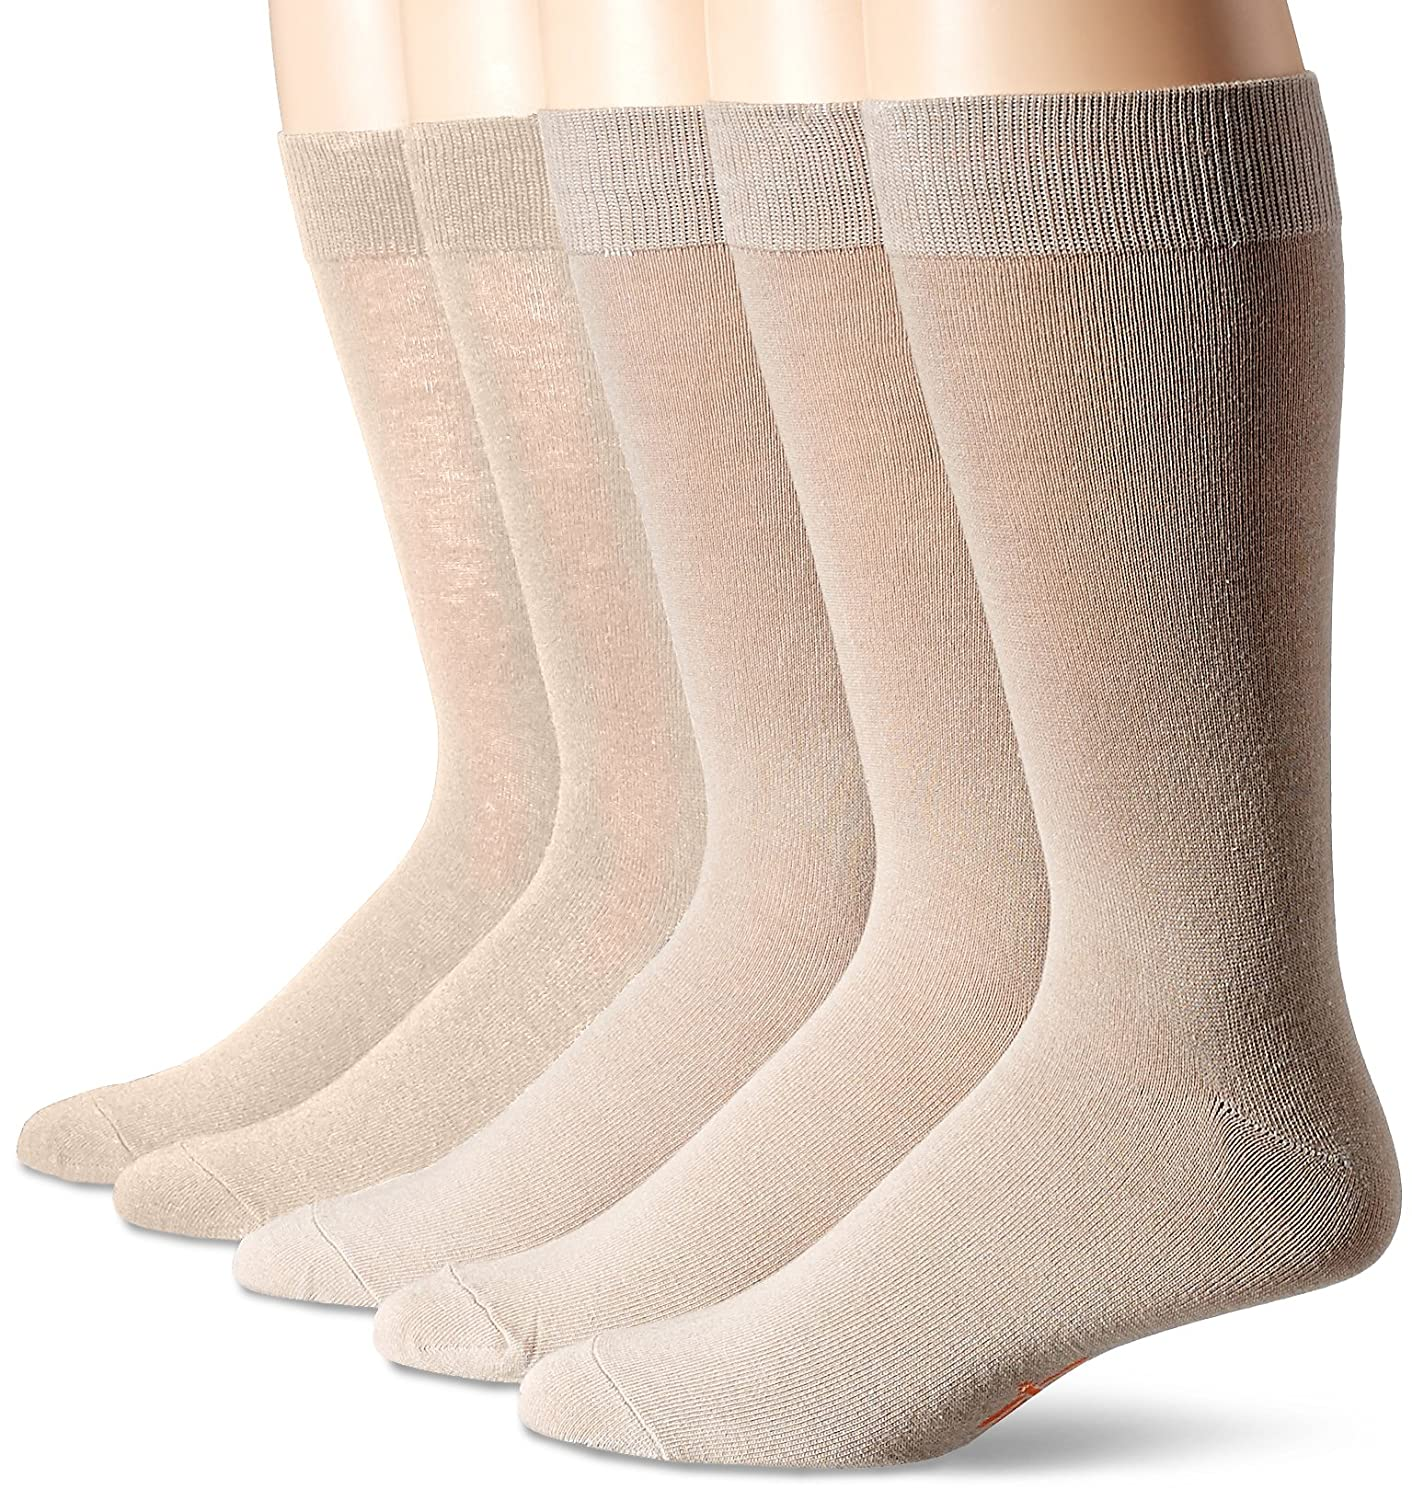 Dockers Men's 5 Pack Classics Dress Flat Knit Crew Socks Royce Too D51005